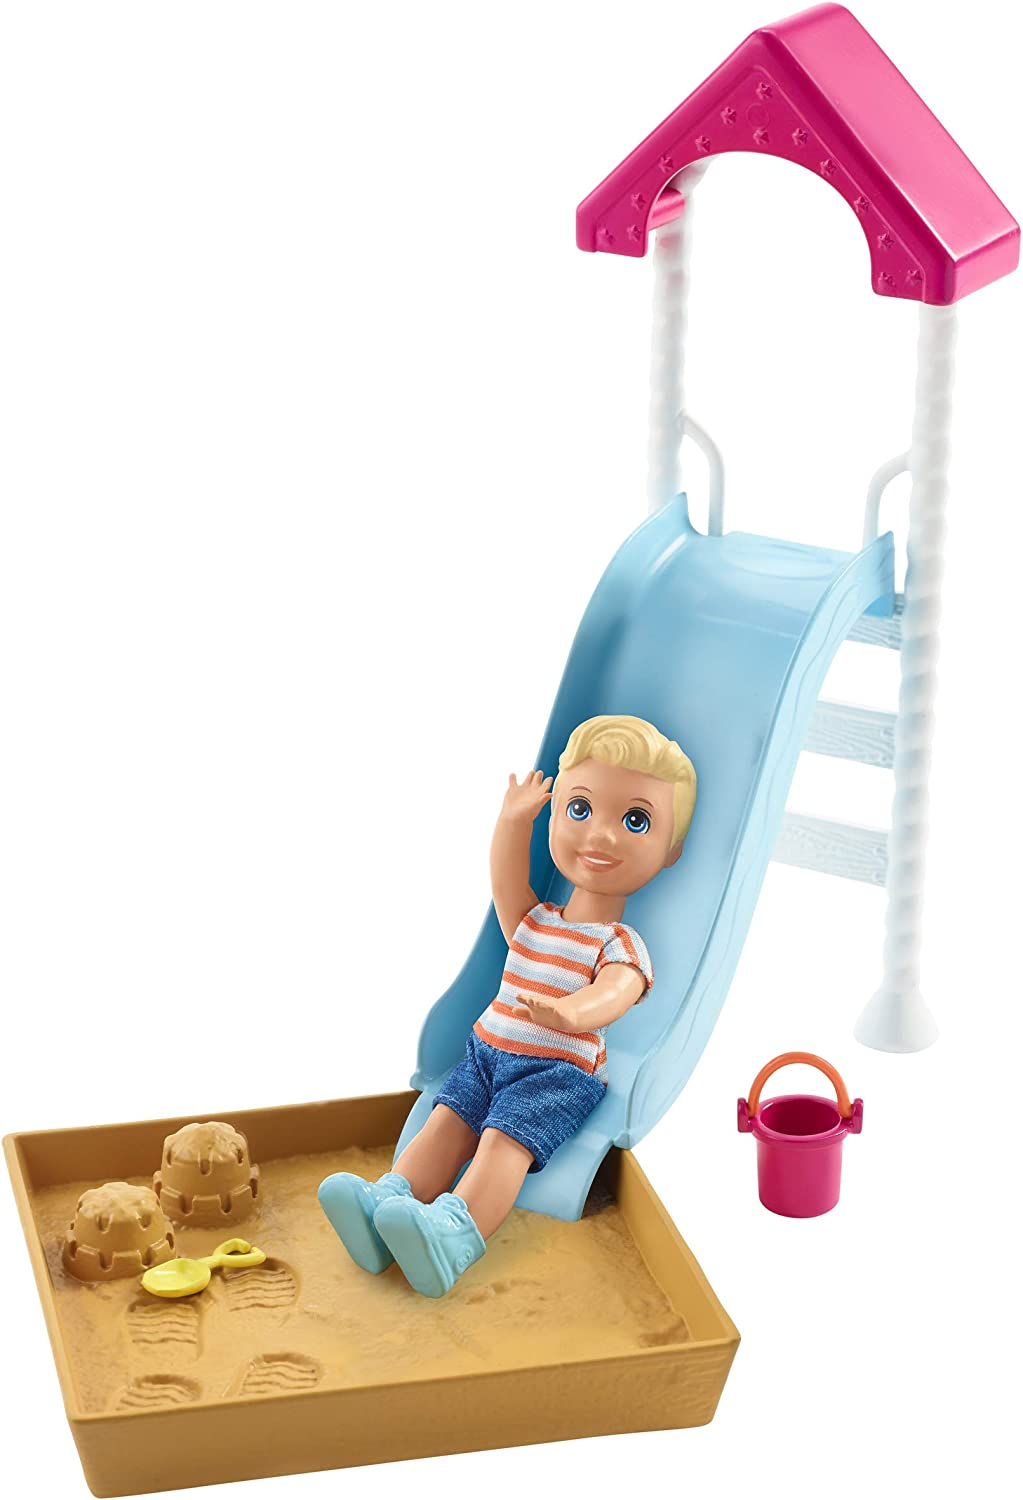 Barbie Skipper Babysitters Inc. Doll and Playset, Small Toddler Doll and Playground Piece with Slide and Sandbox, Plus Themed Accessories, Gift for 3 to 7 Year Olds​​​